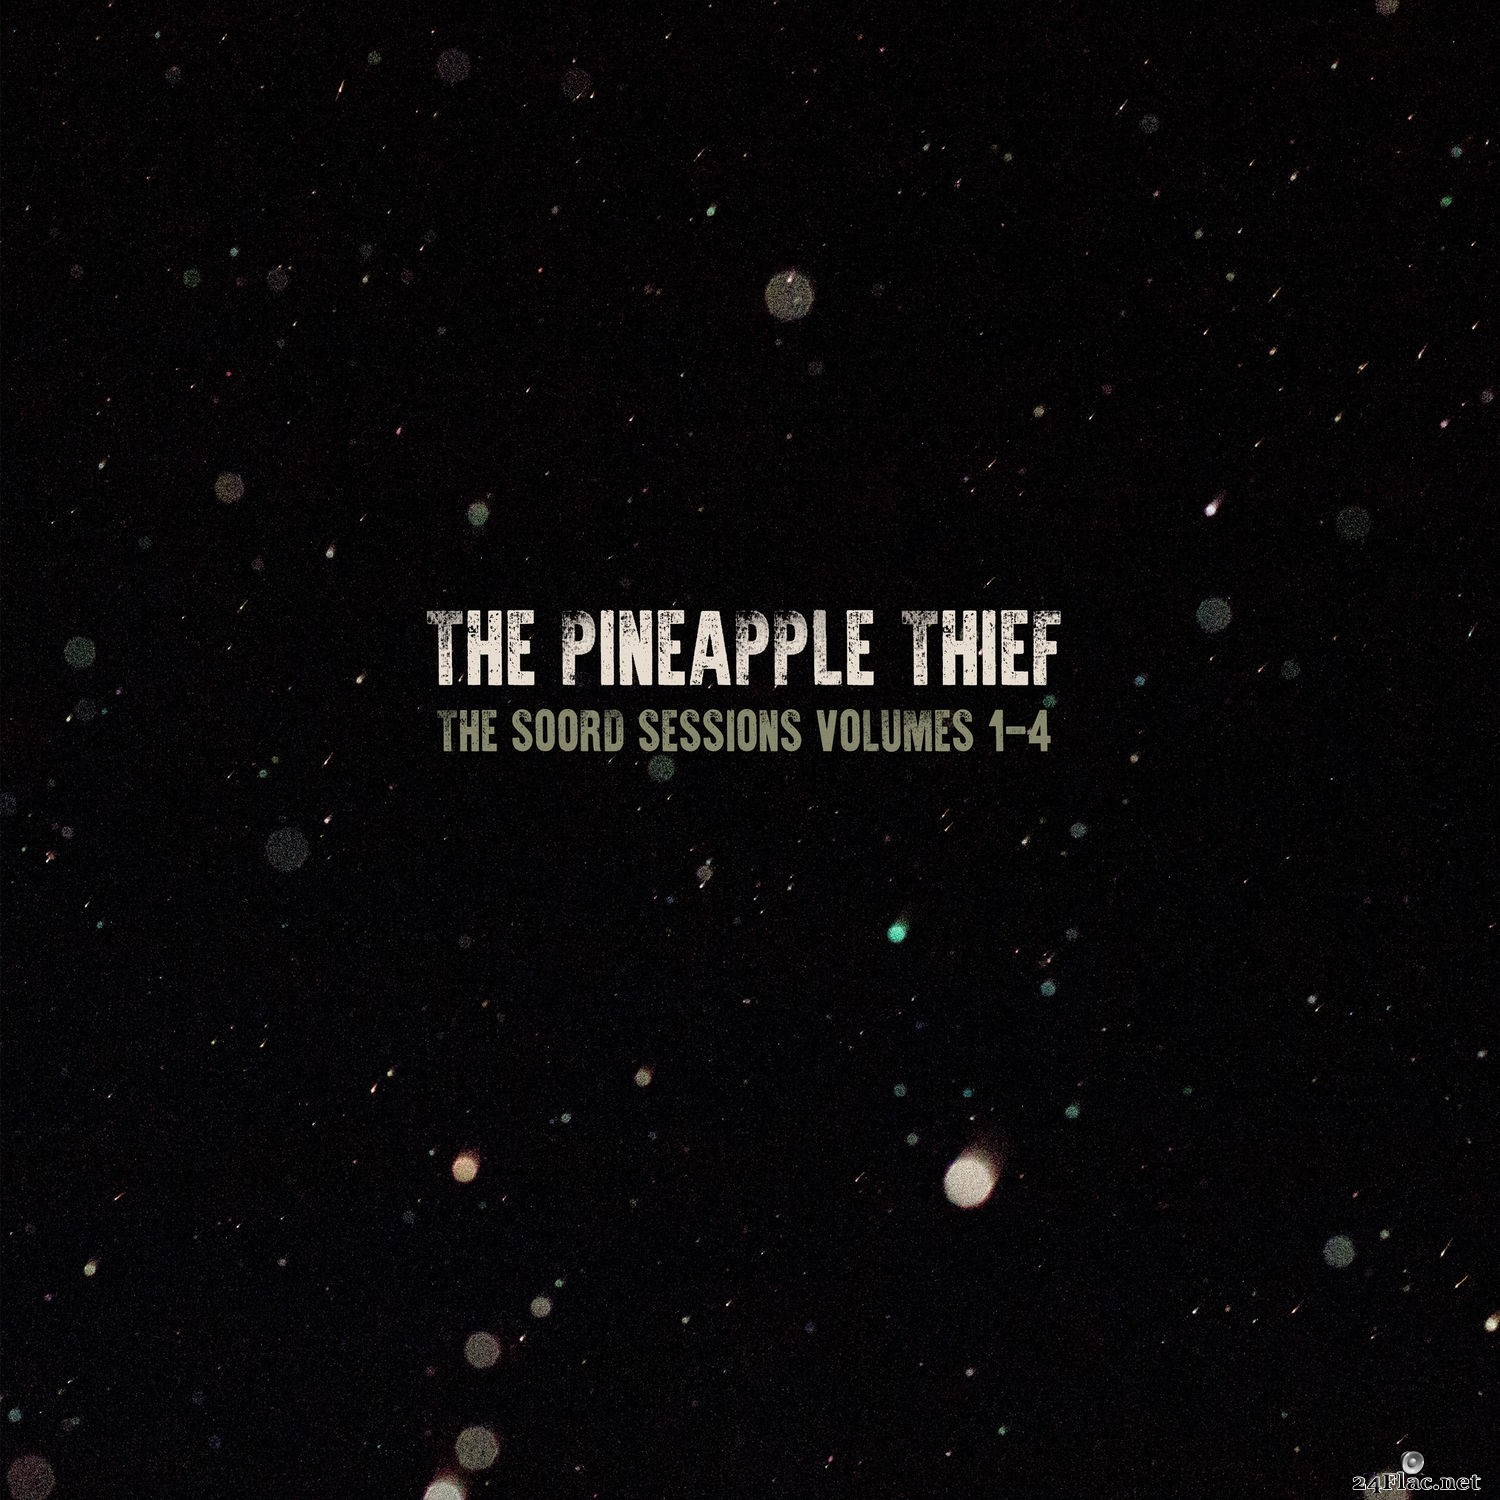 The Pineapple Thief - The Soord Sessions 1 - 4 (Sampler) (2021) Hi-Res